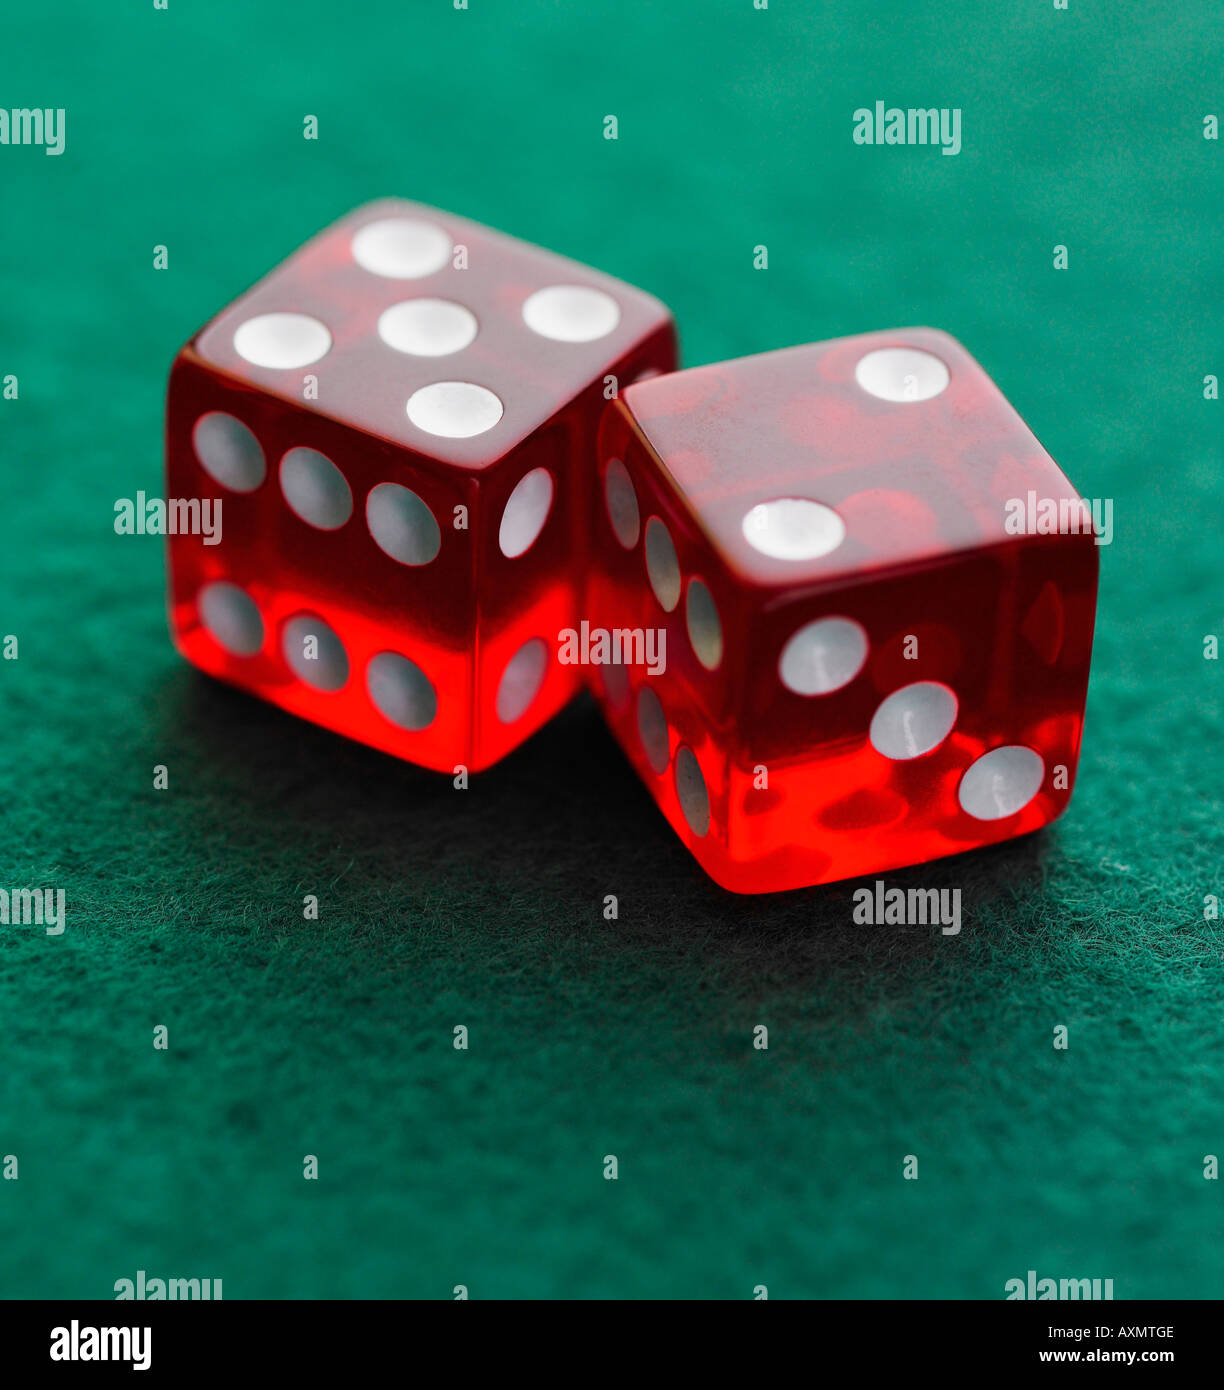 Still life of pair of dice - Stock Image